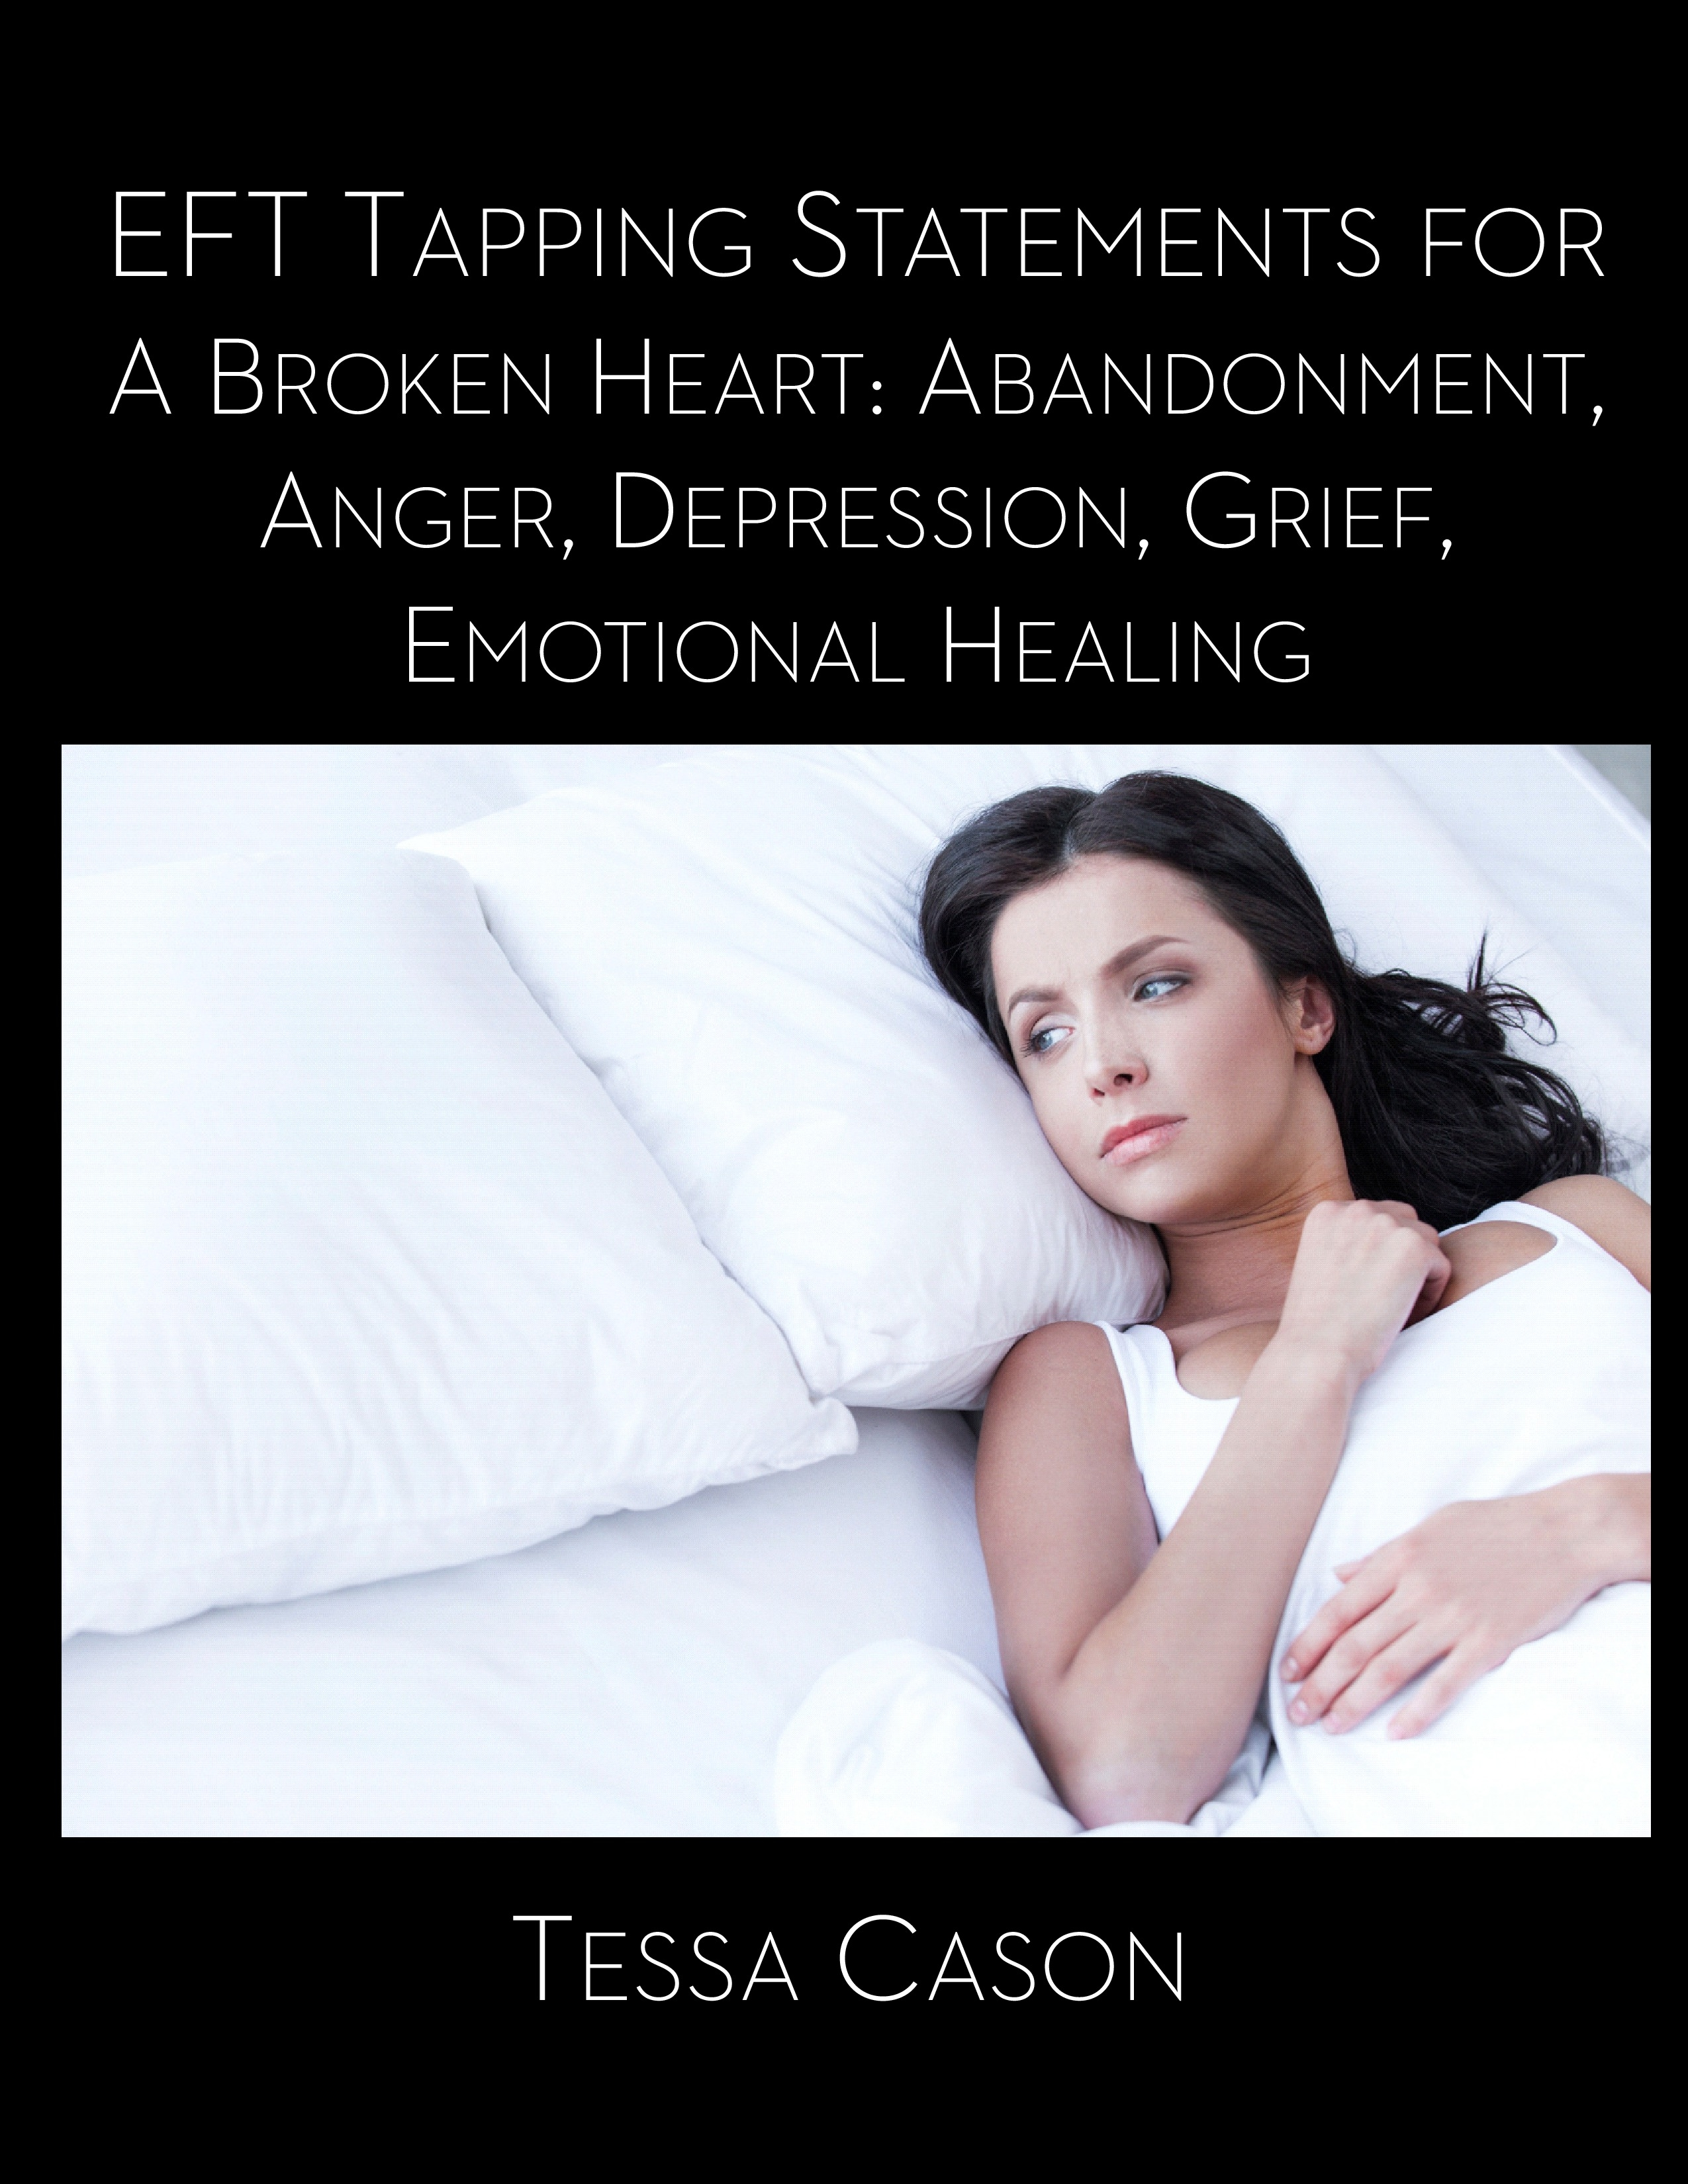 A Broken Heart -1,000 tapping statements